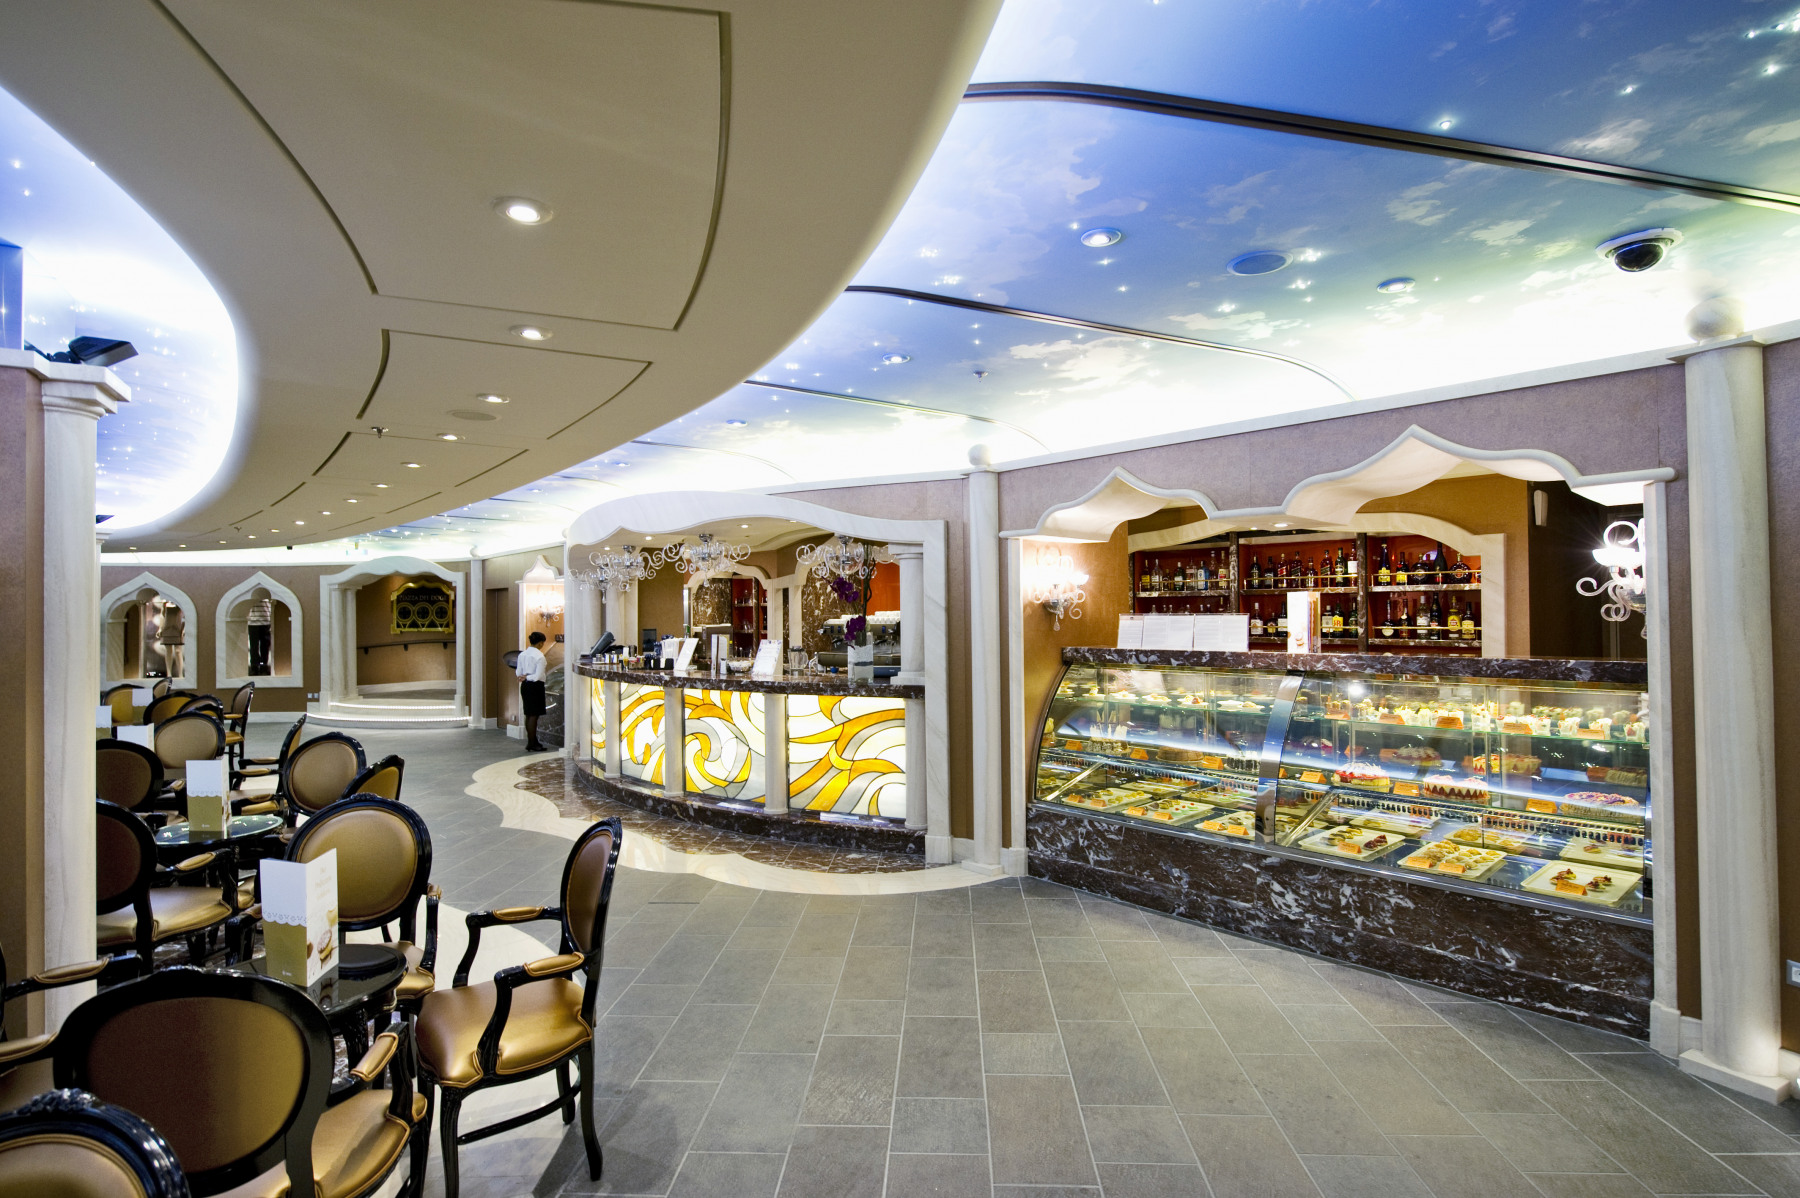 MSC Fantasia Class Icecream bar.jpg